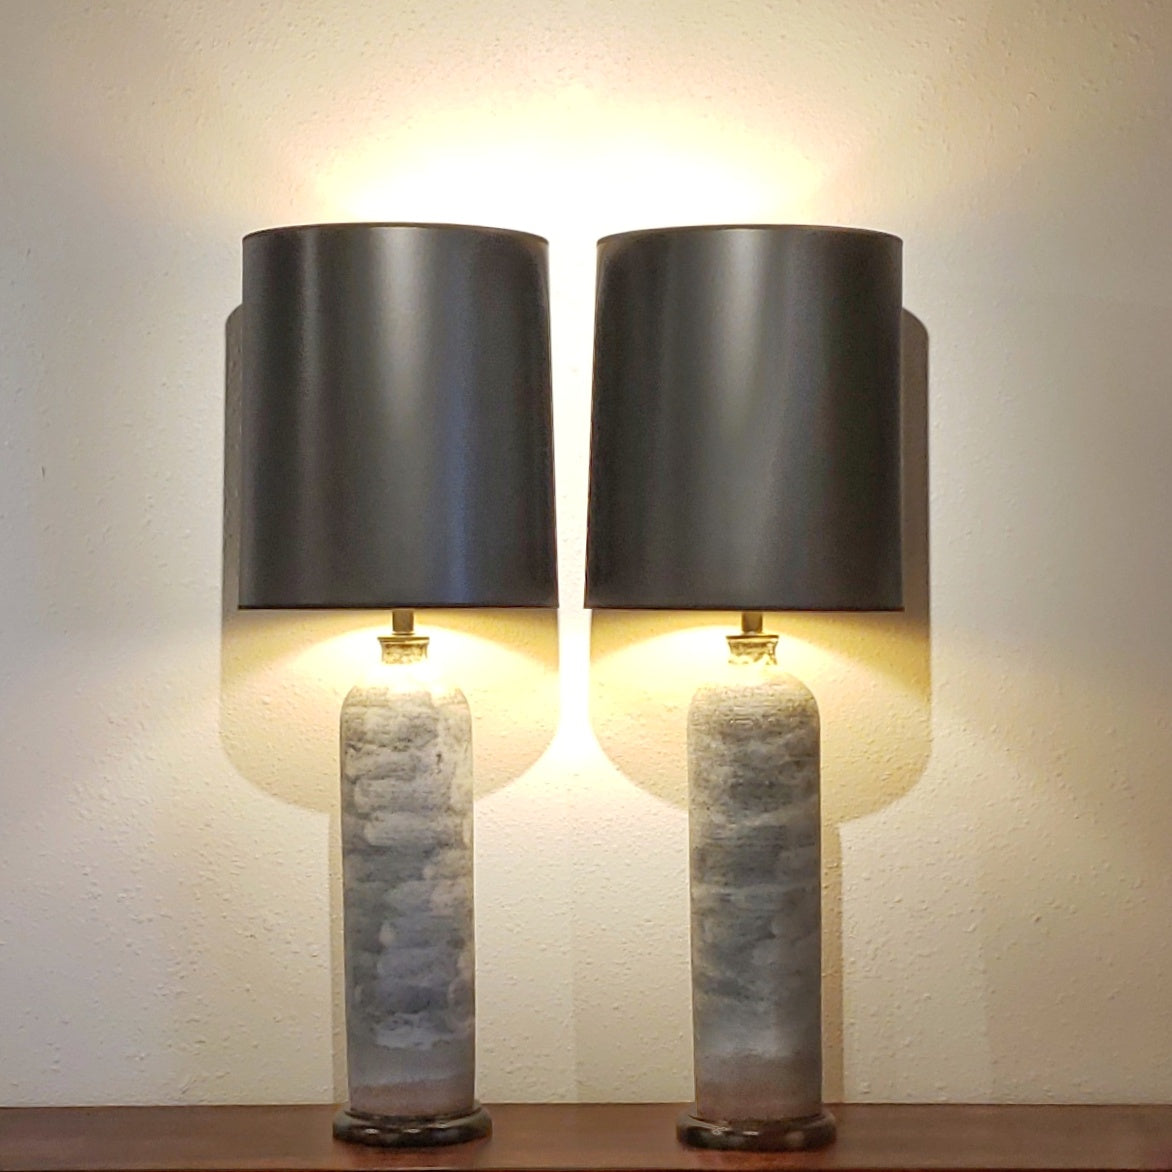 CARSTENS TÖNNIESHOF TABLE LAMPS